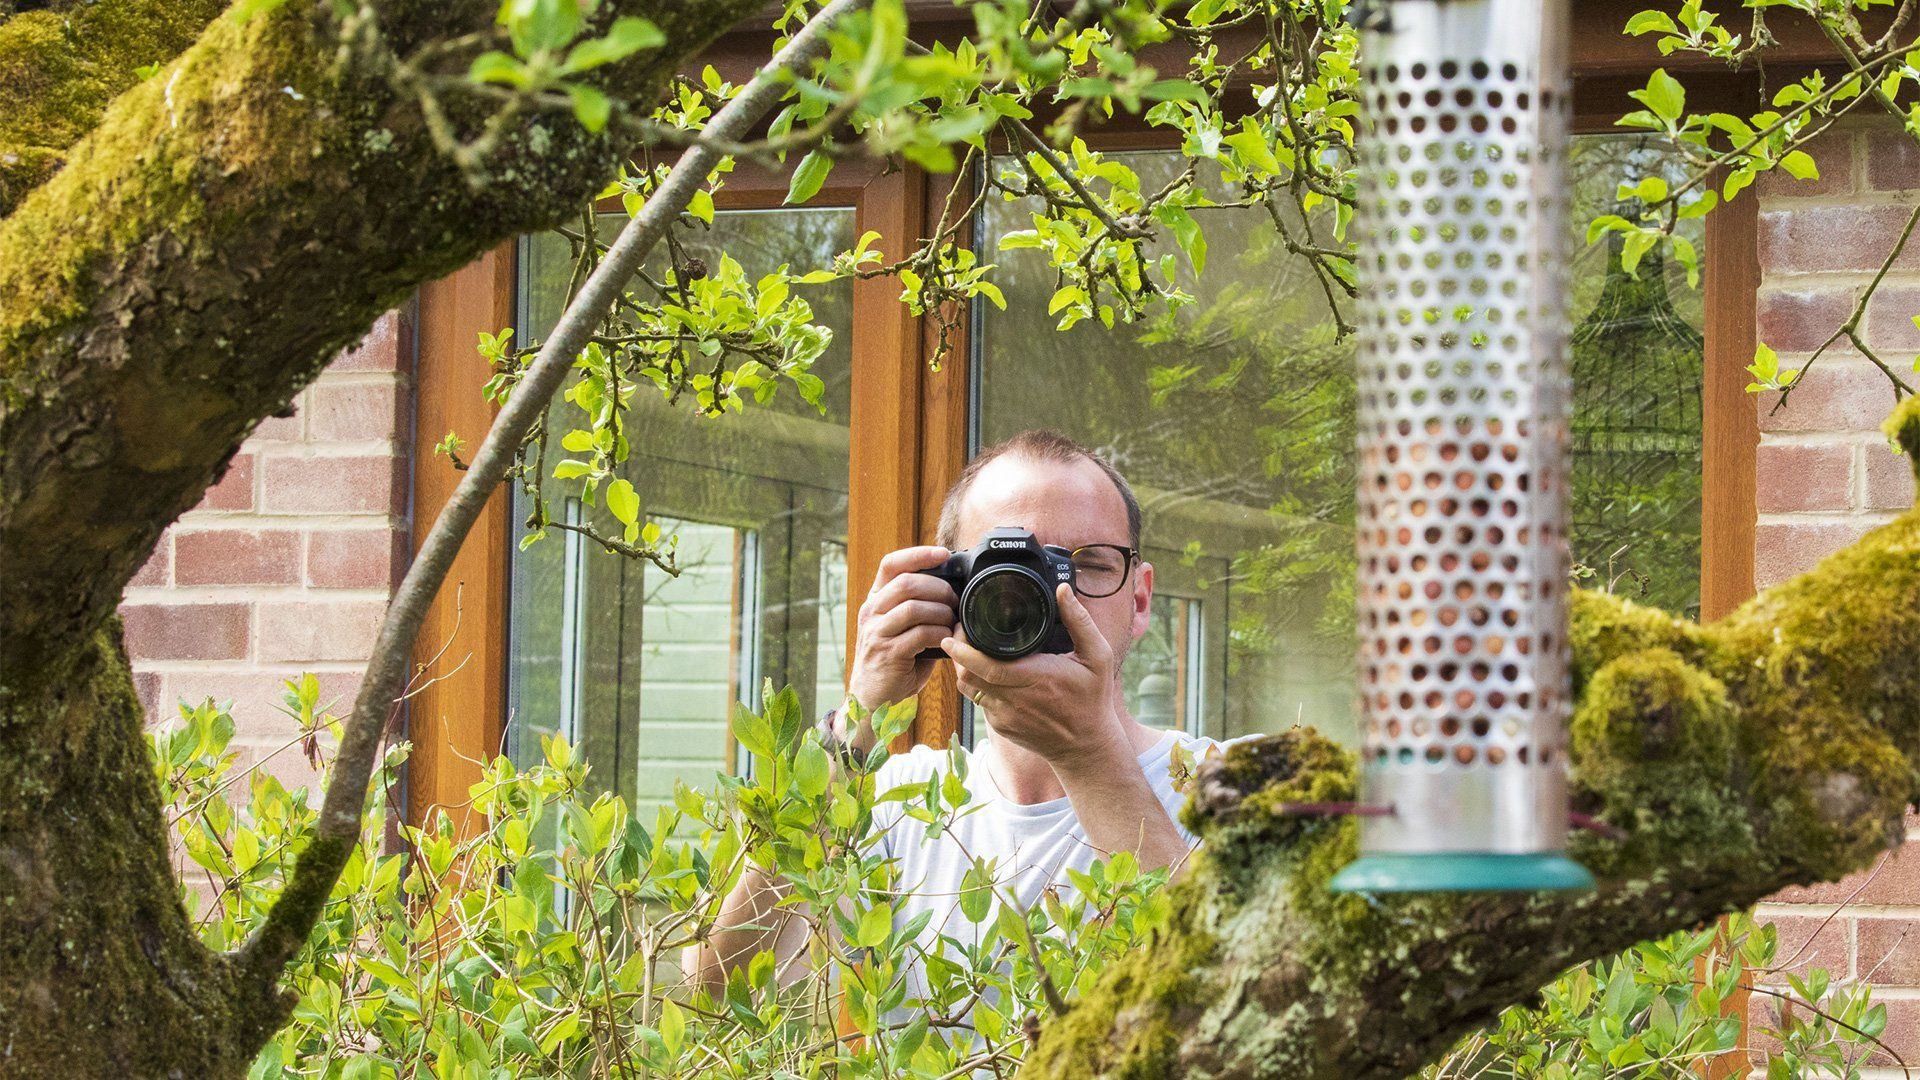 James Paterson photographing a bird feeder in his garden.